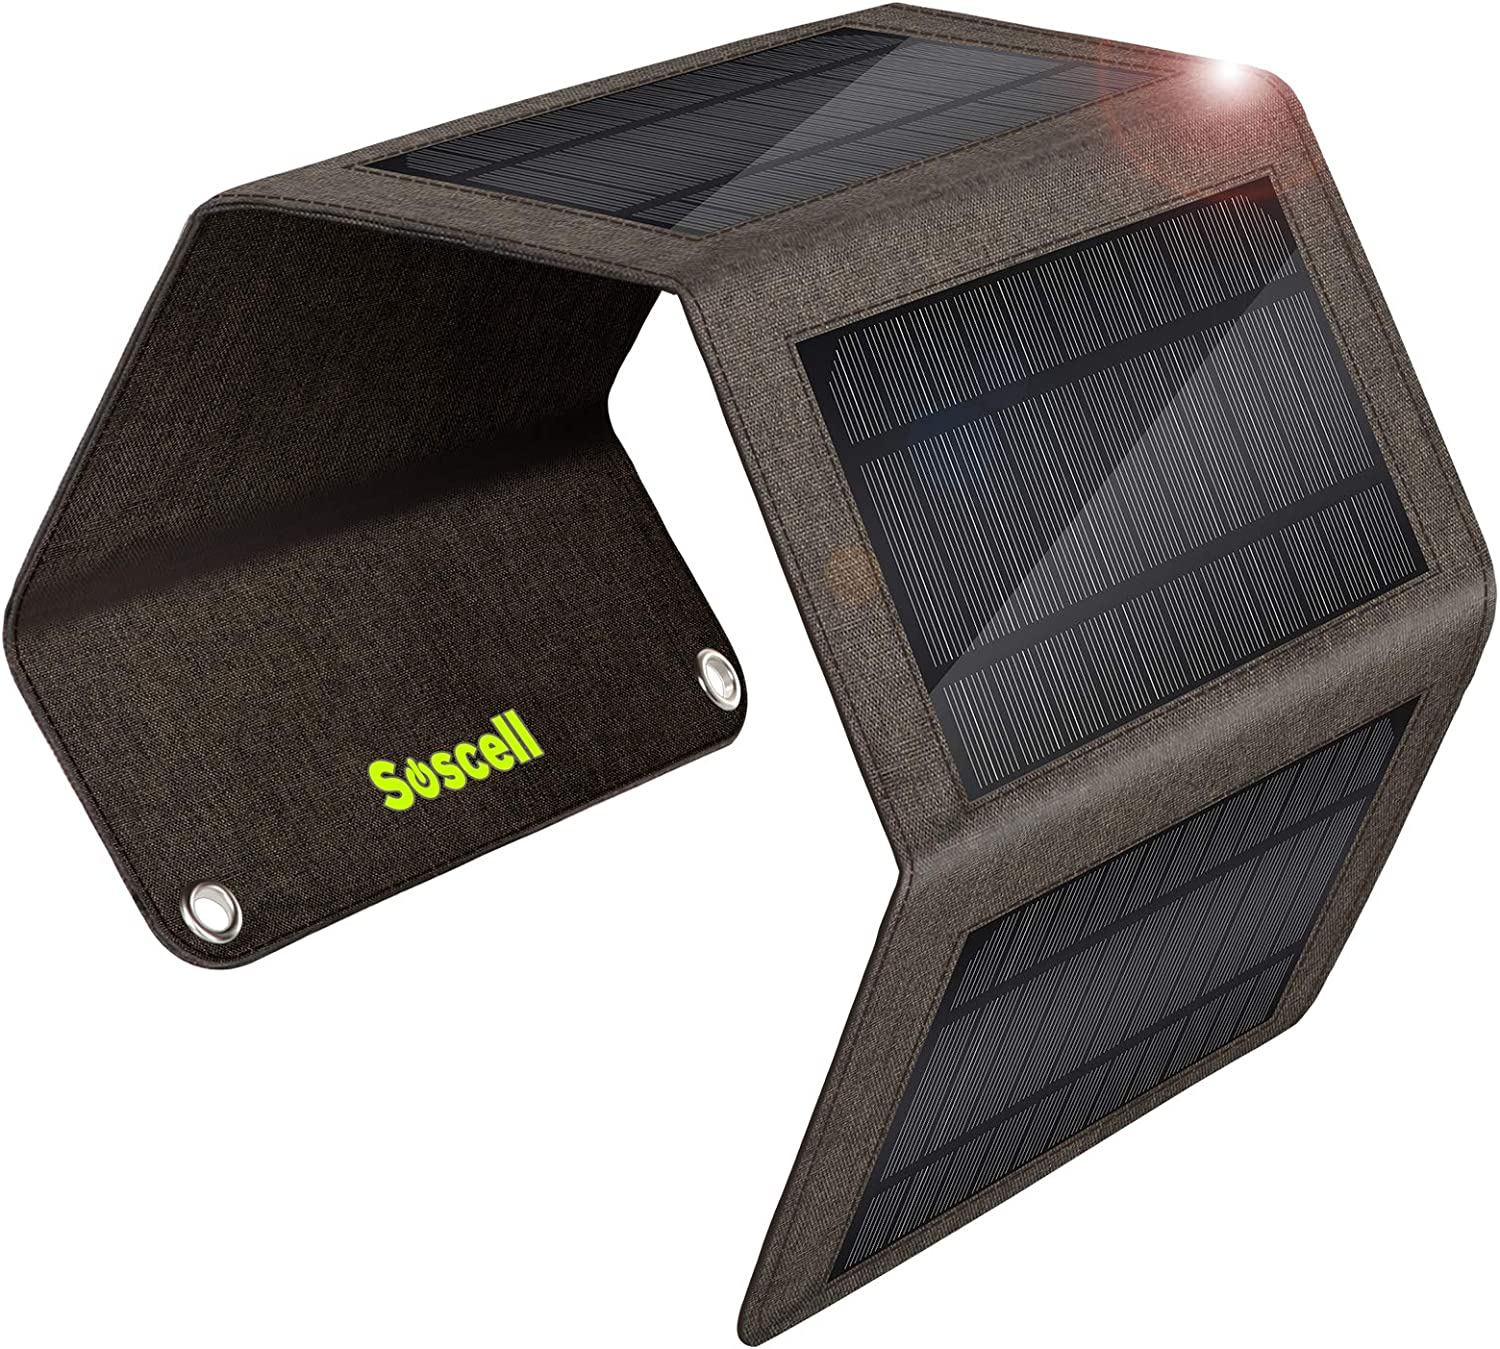 Suscell 7W Solar Charger, Foldable Portable Waterproof Solar Panels Phone Charger, Compatible with iPhone 11/XS/XS Max/XR/X/8/7, iPad, Samsung Galaxy, LG, Google Pixel etc.